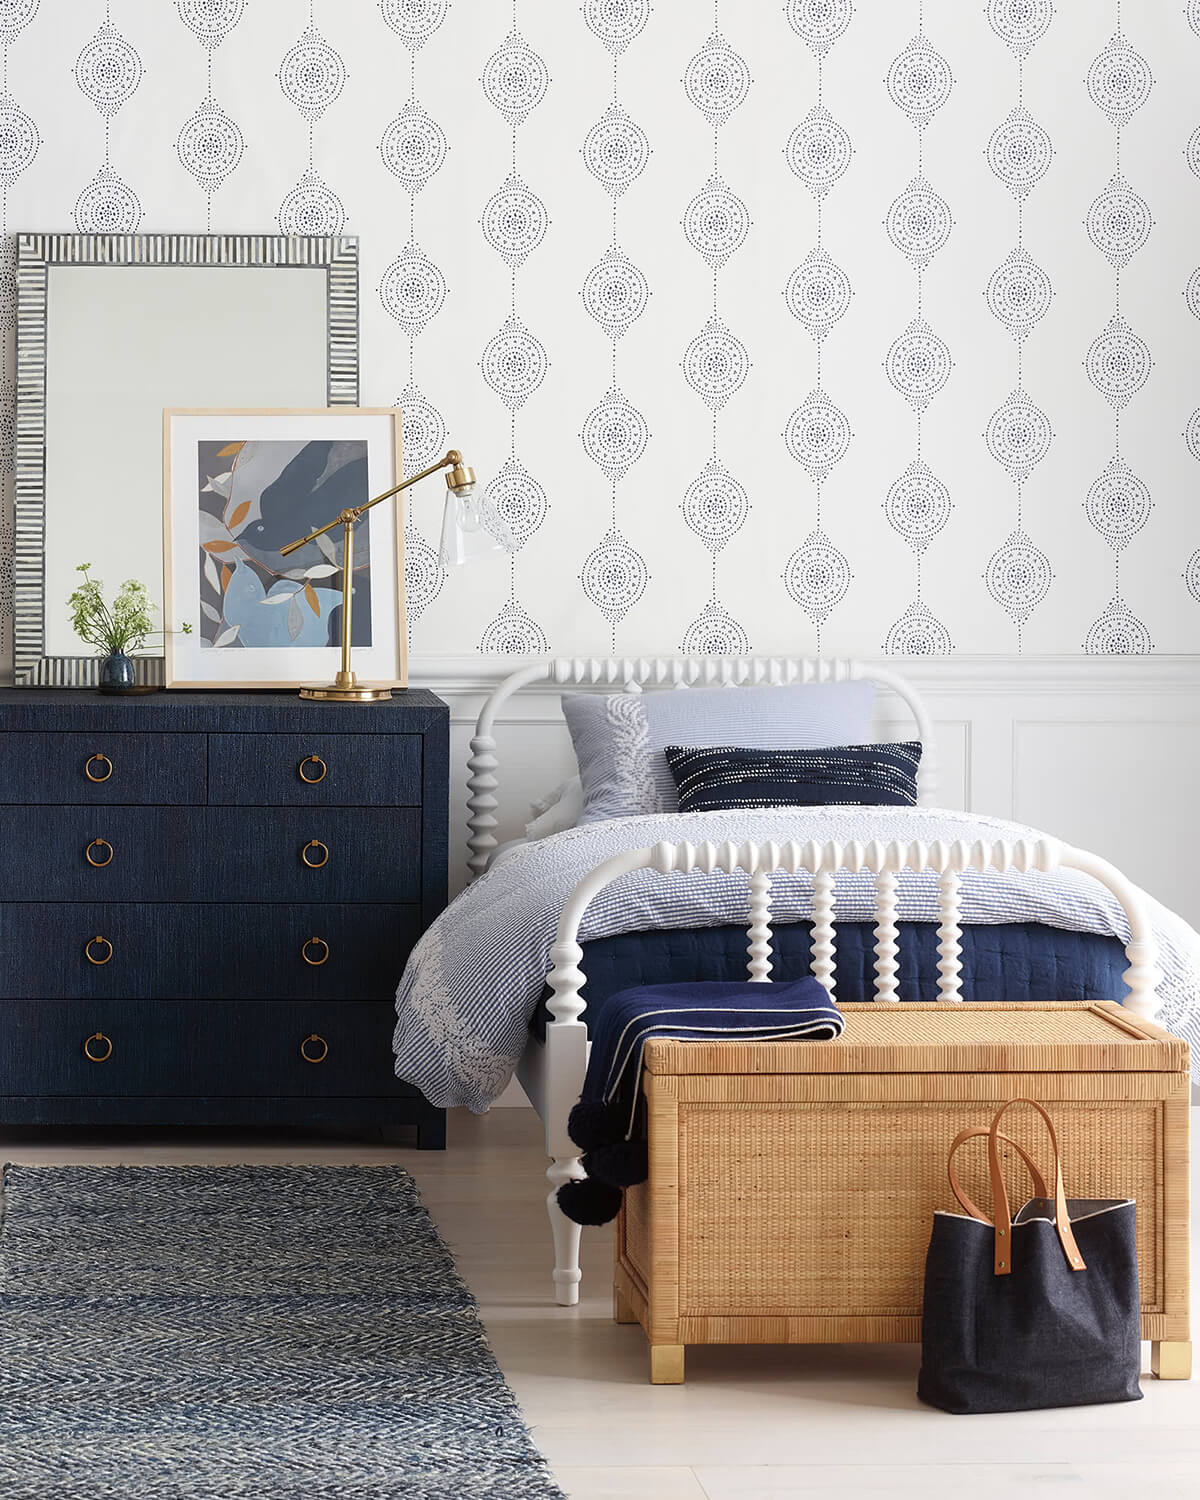 Image of: Adorable Navy Blue Teen Or Guest Room Decor The Court House Hotel 1200×1500 Download Hd Wallpaper Wallpapertip